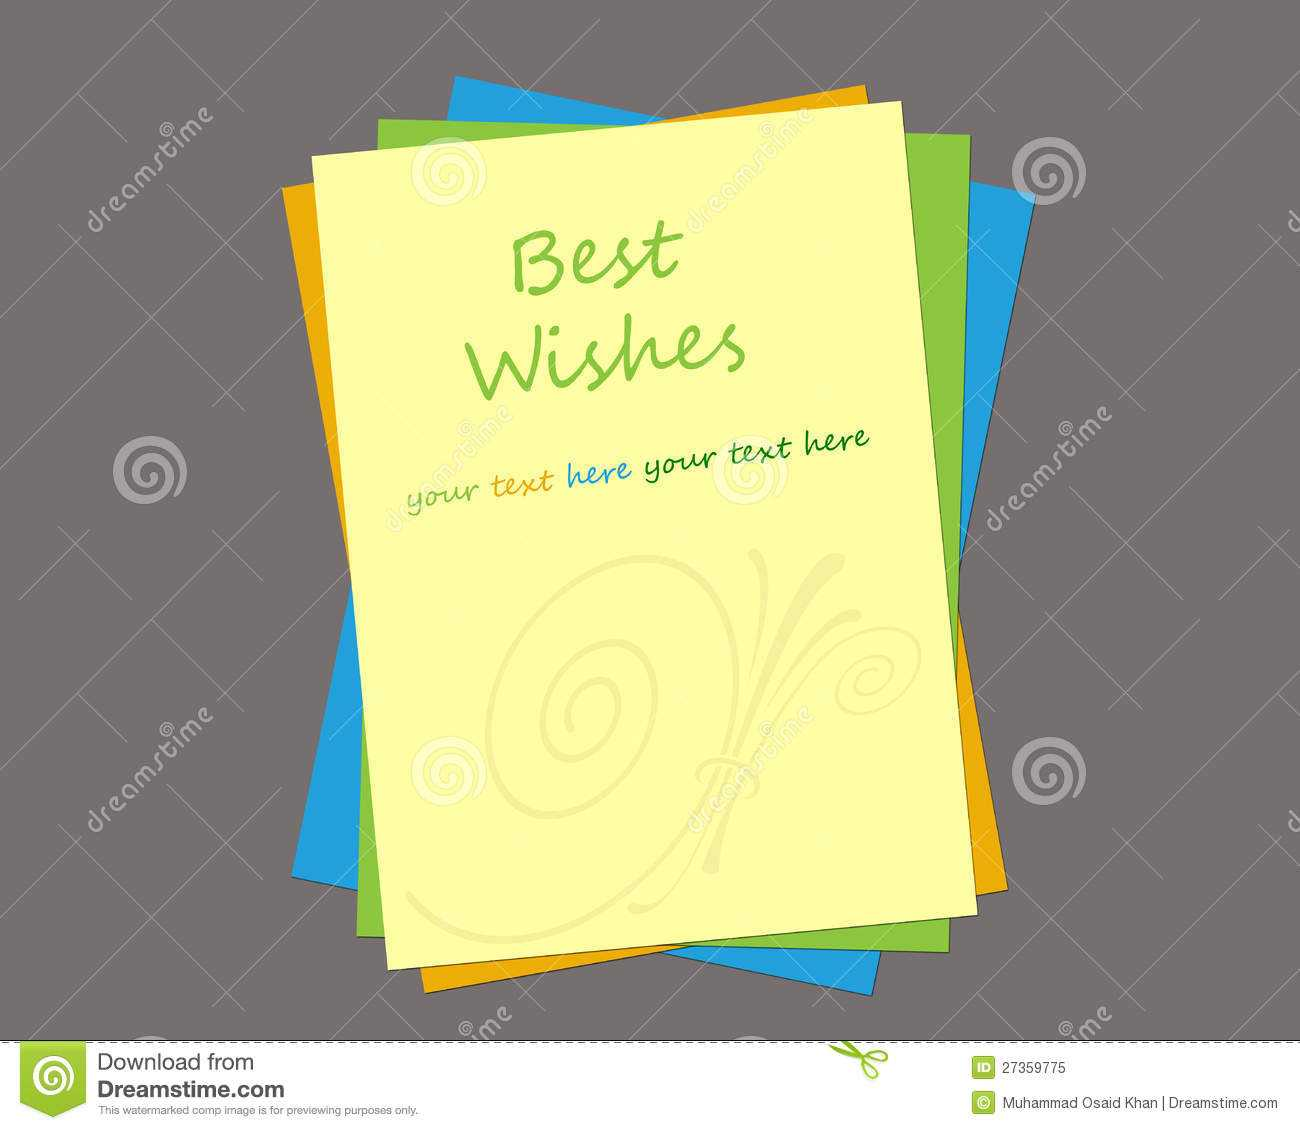 Greeting Card Template Stock Illustration. Illustration Of Pertaining To Free Blank Greeting Card Templates For Word